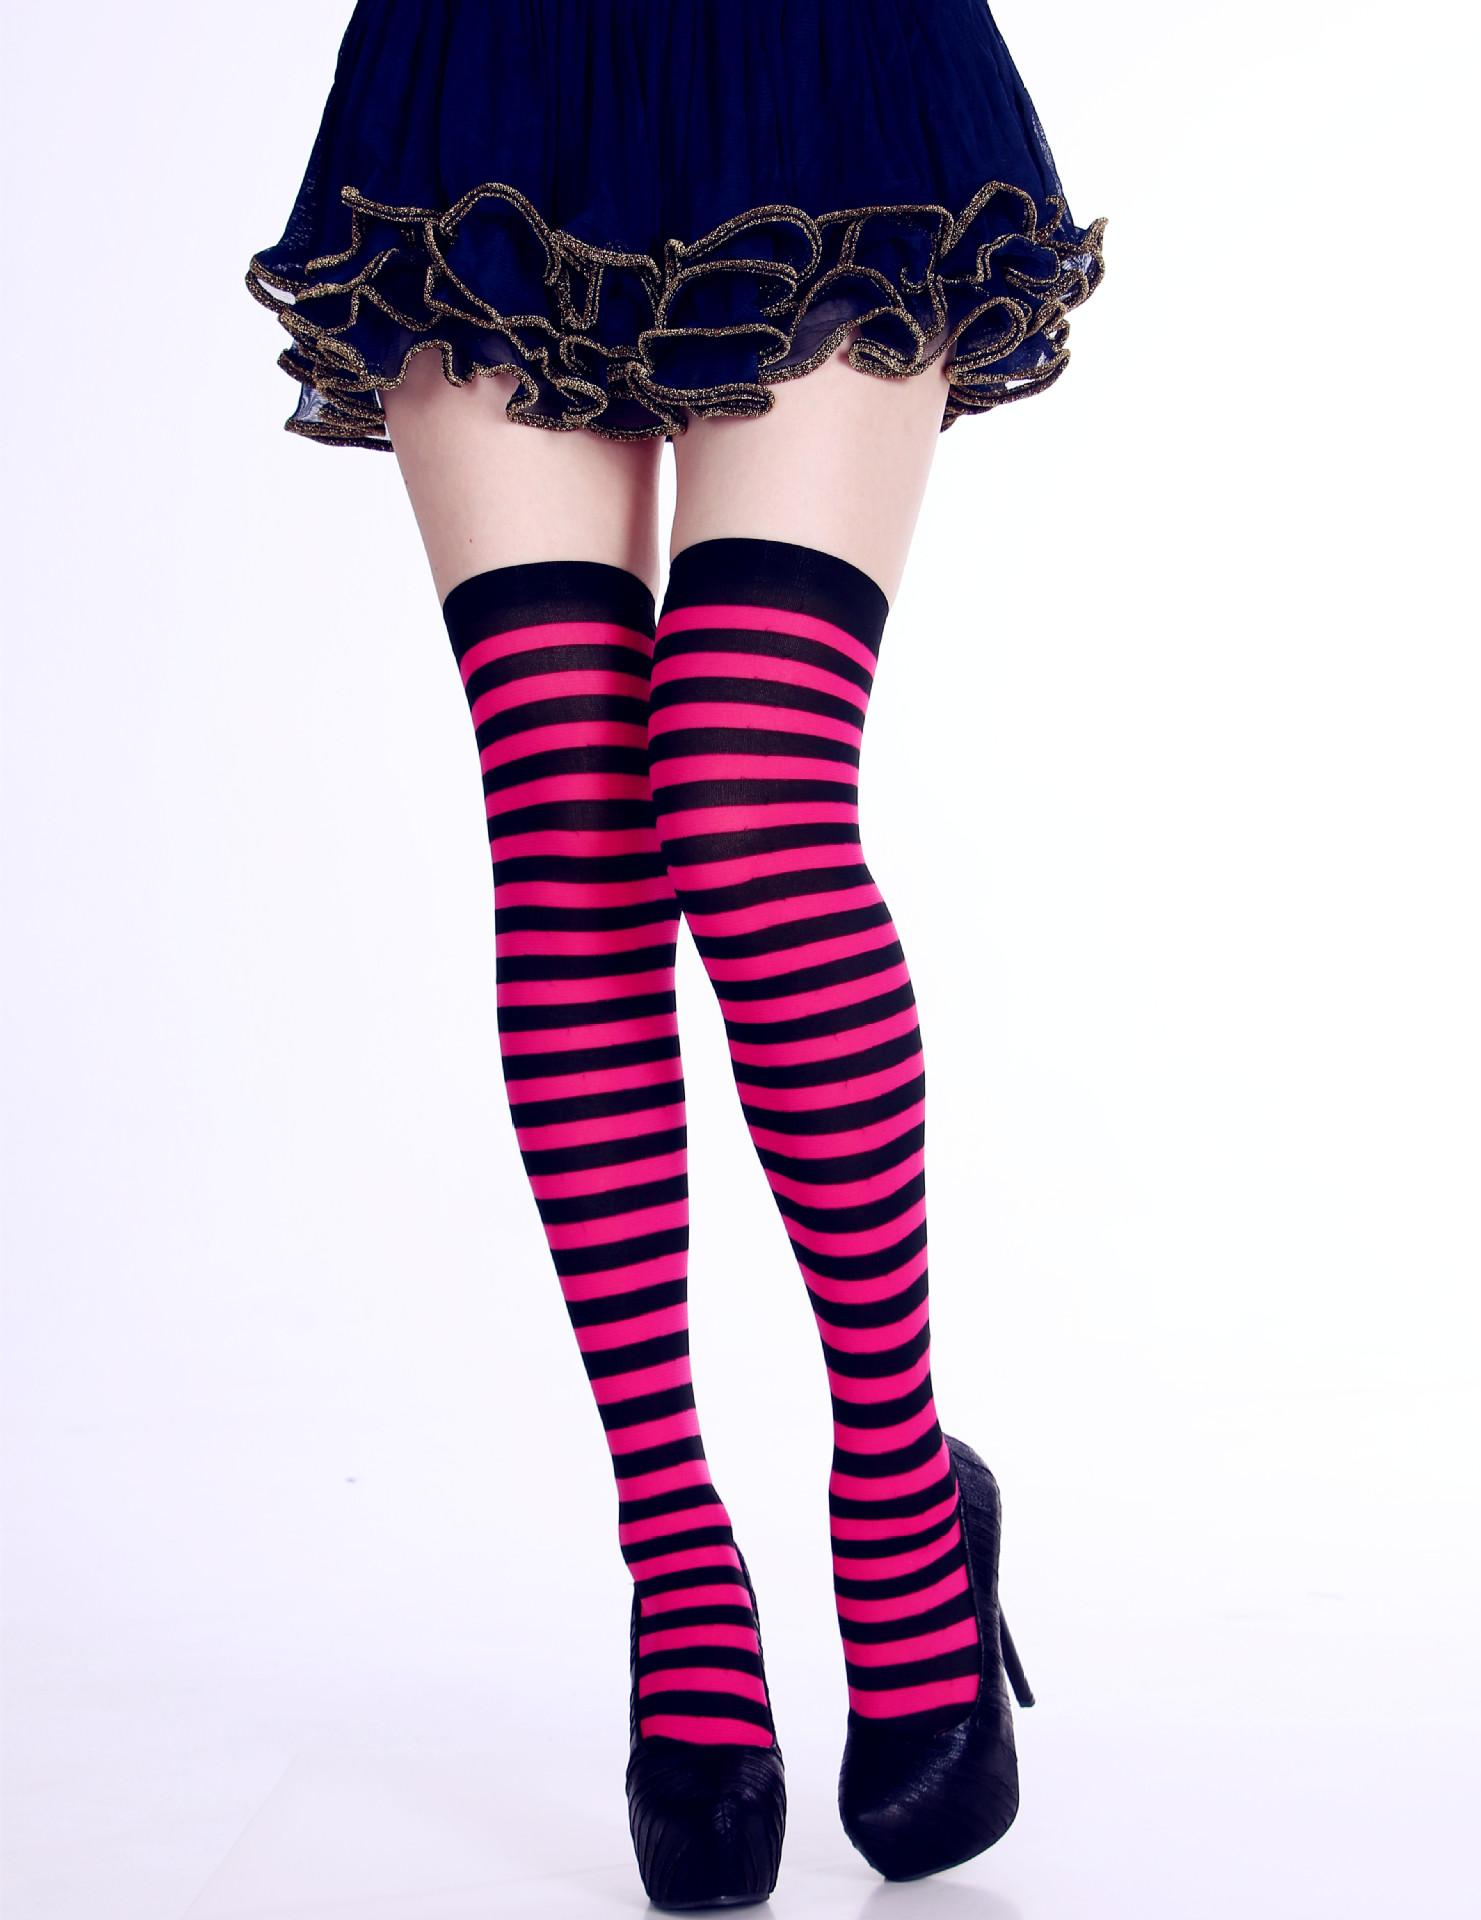 246d0c110f8 2019 Women Over Knee Long Sock Striped Thigh High Socks Cute Cosplay  Costume Stockings For Party Favors From Angelcheng2013